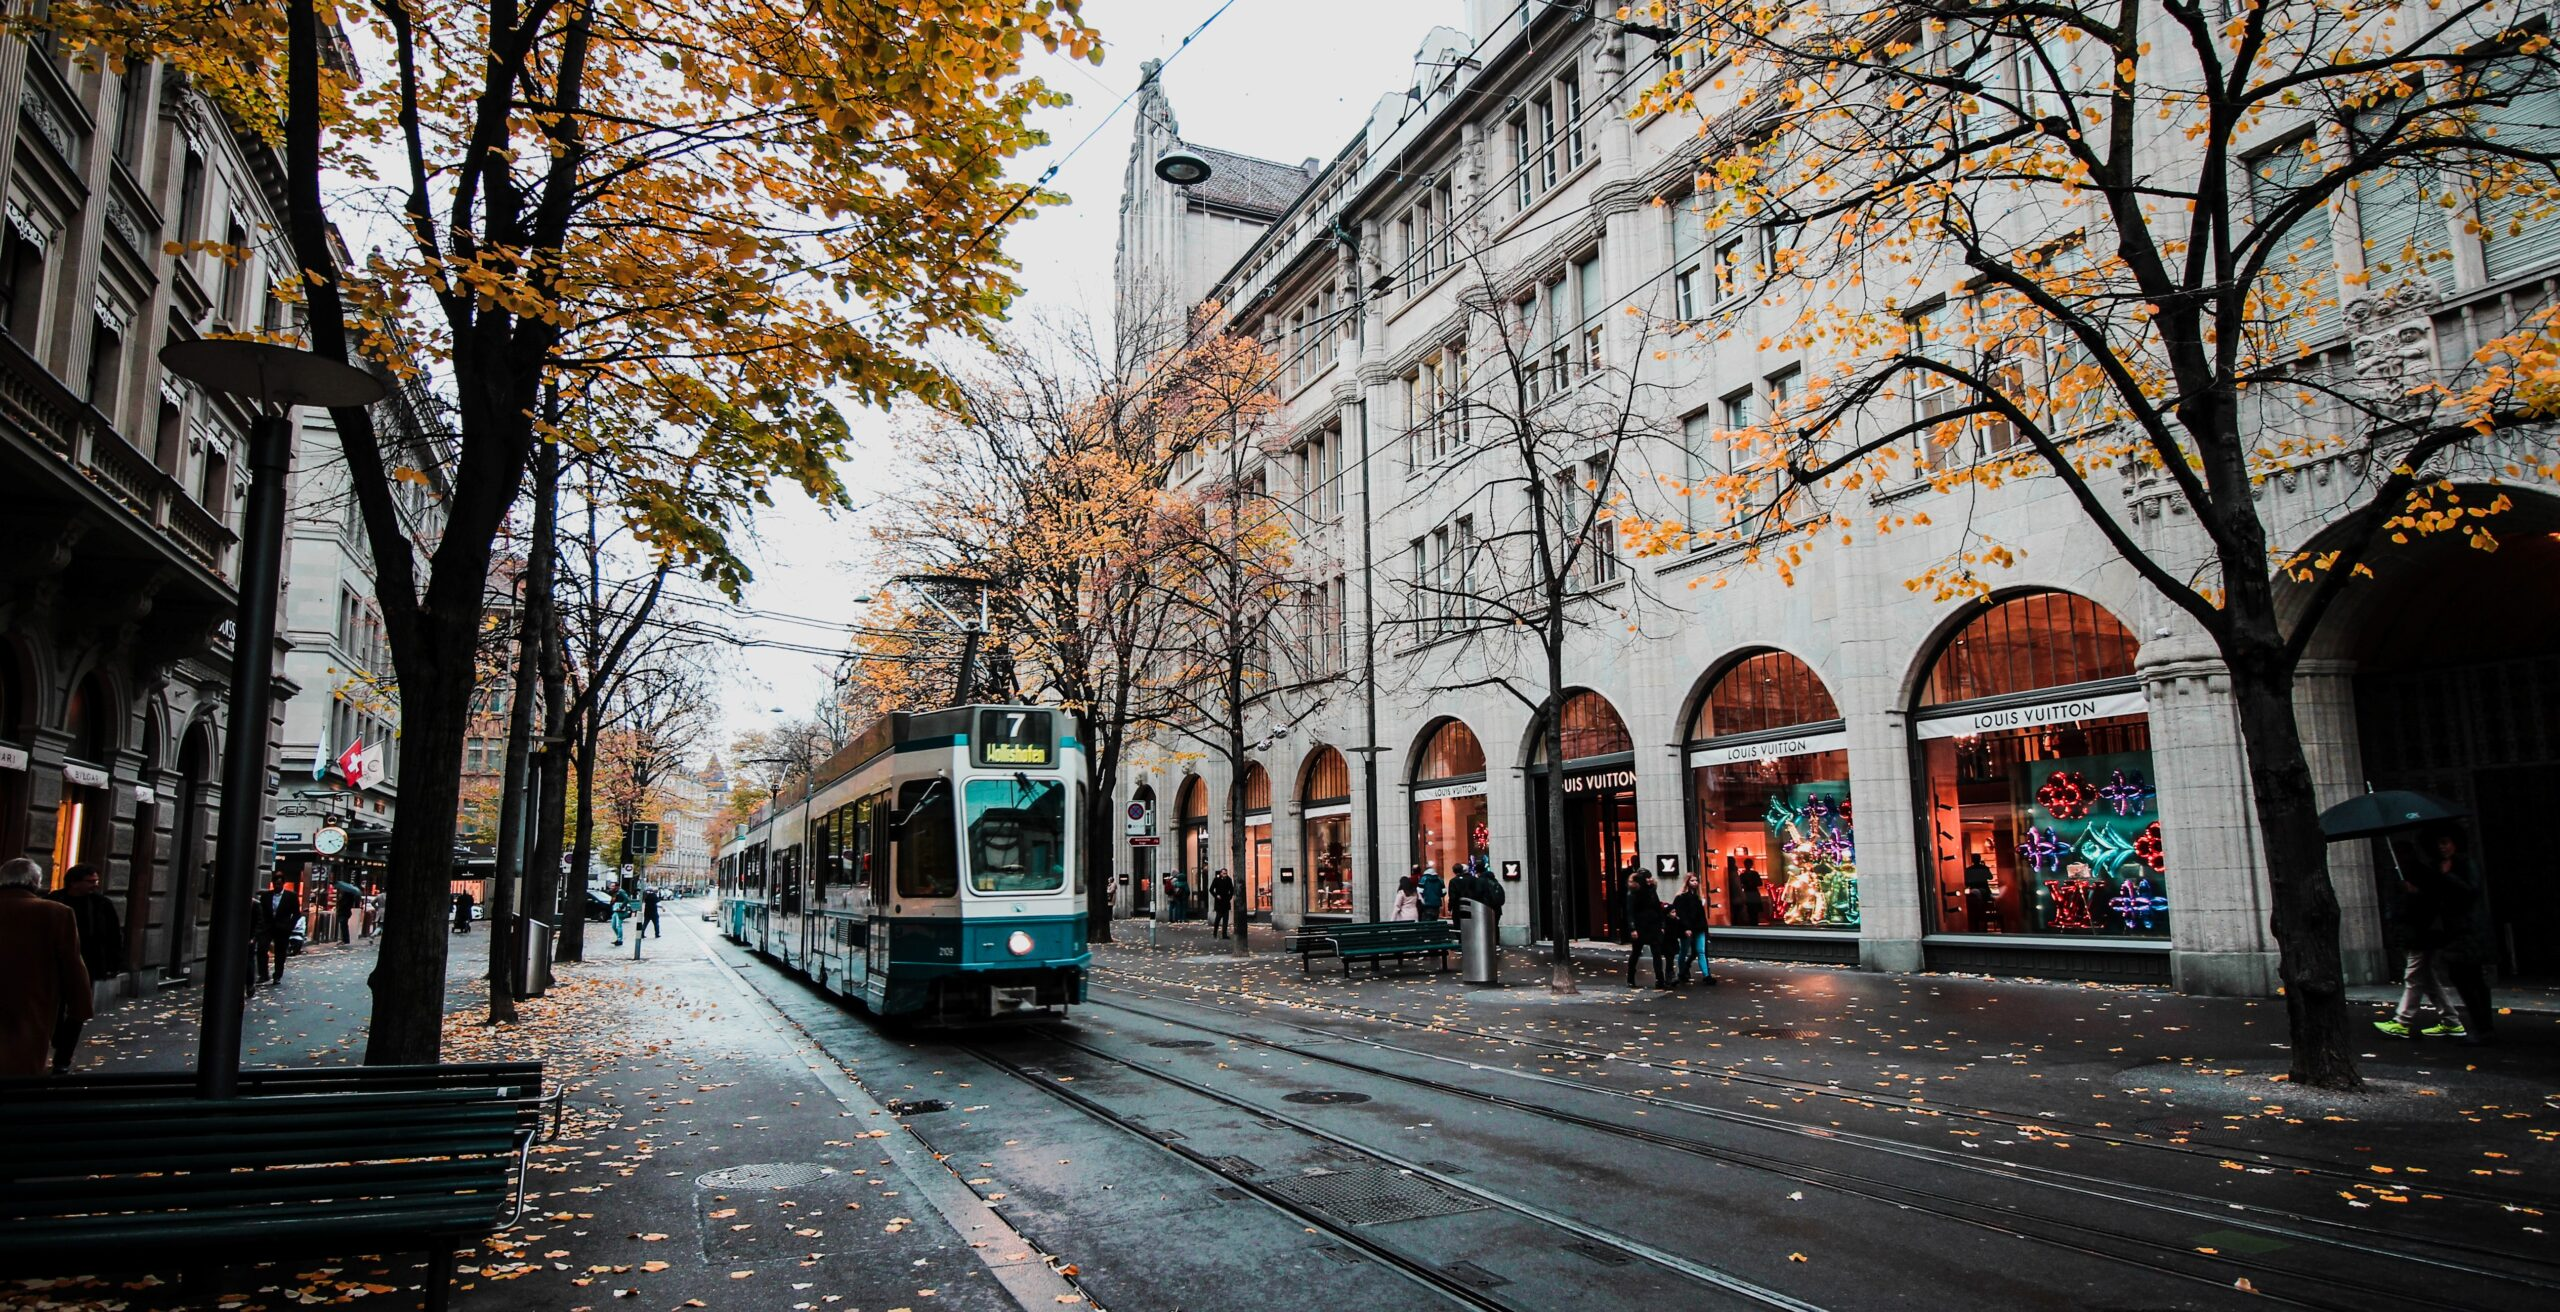 Train on street in Europe, surrounded by trees with colorful, autumn leaves